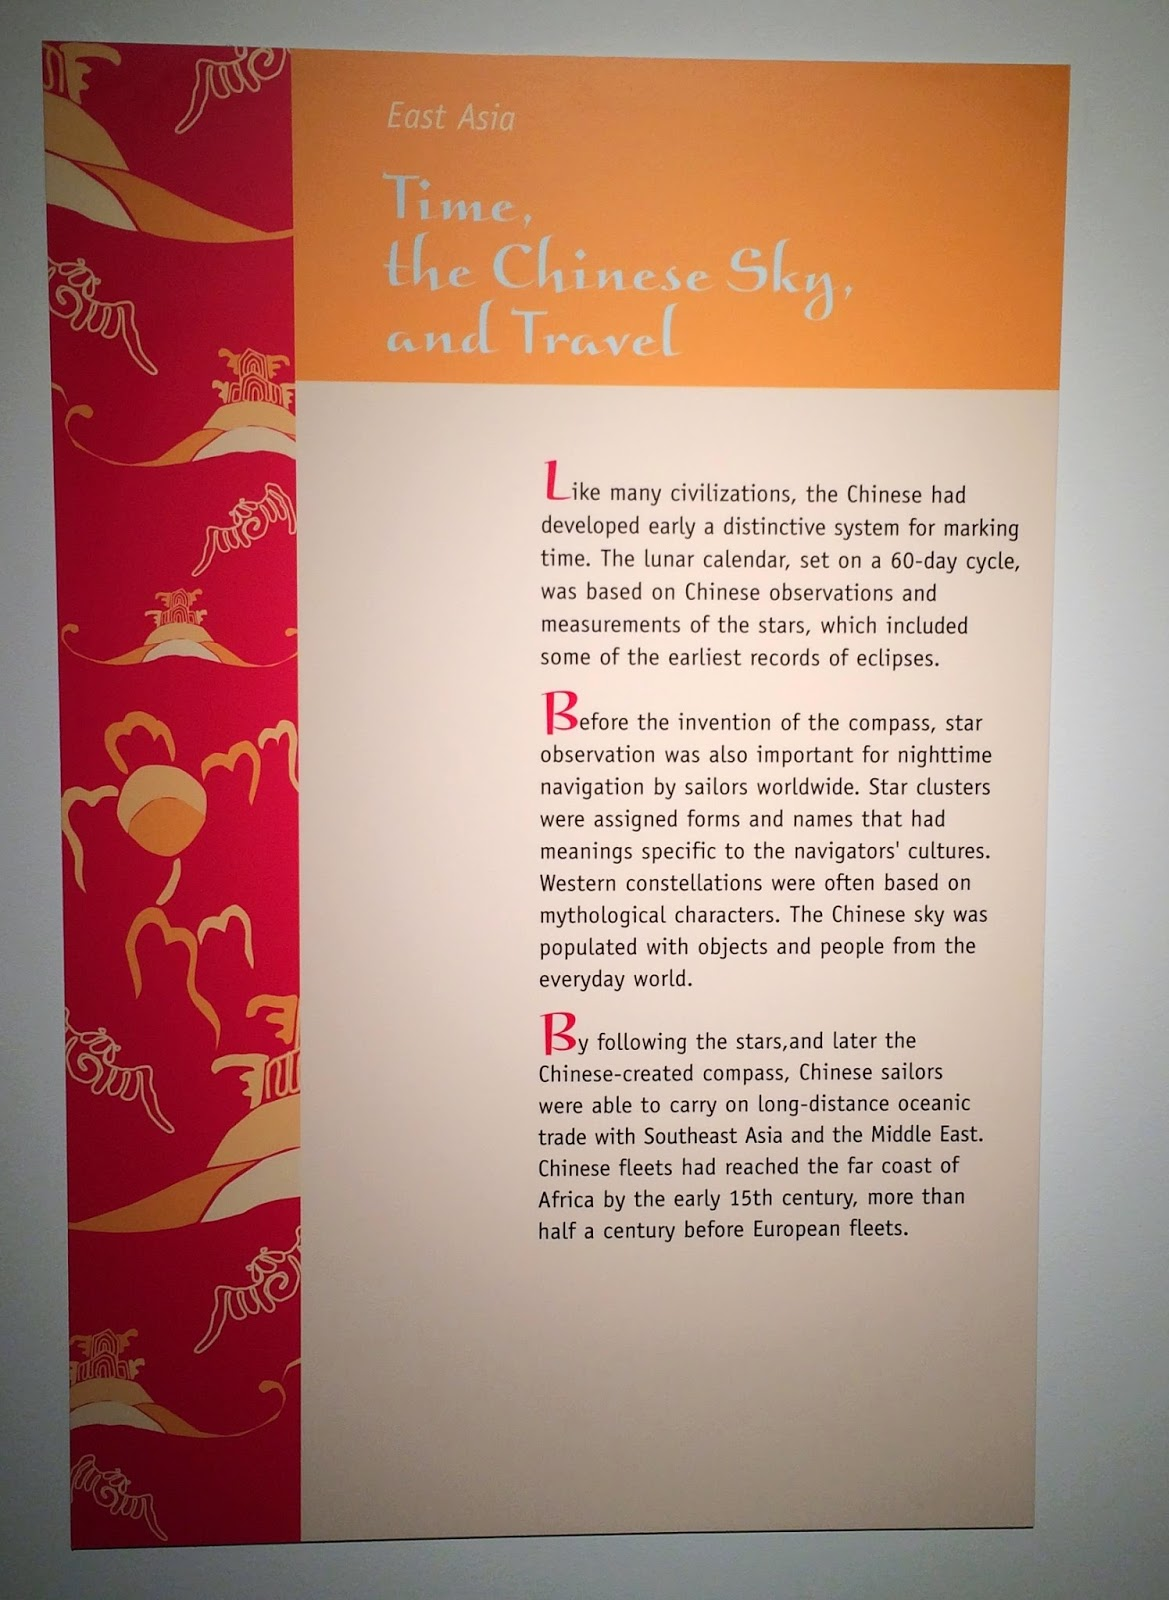 Museum Placard Template : museum, placard, template, Museum, Exhibit, Label, Template, Labels, Database